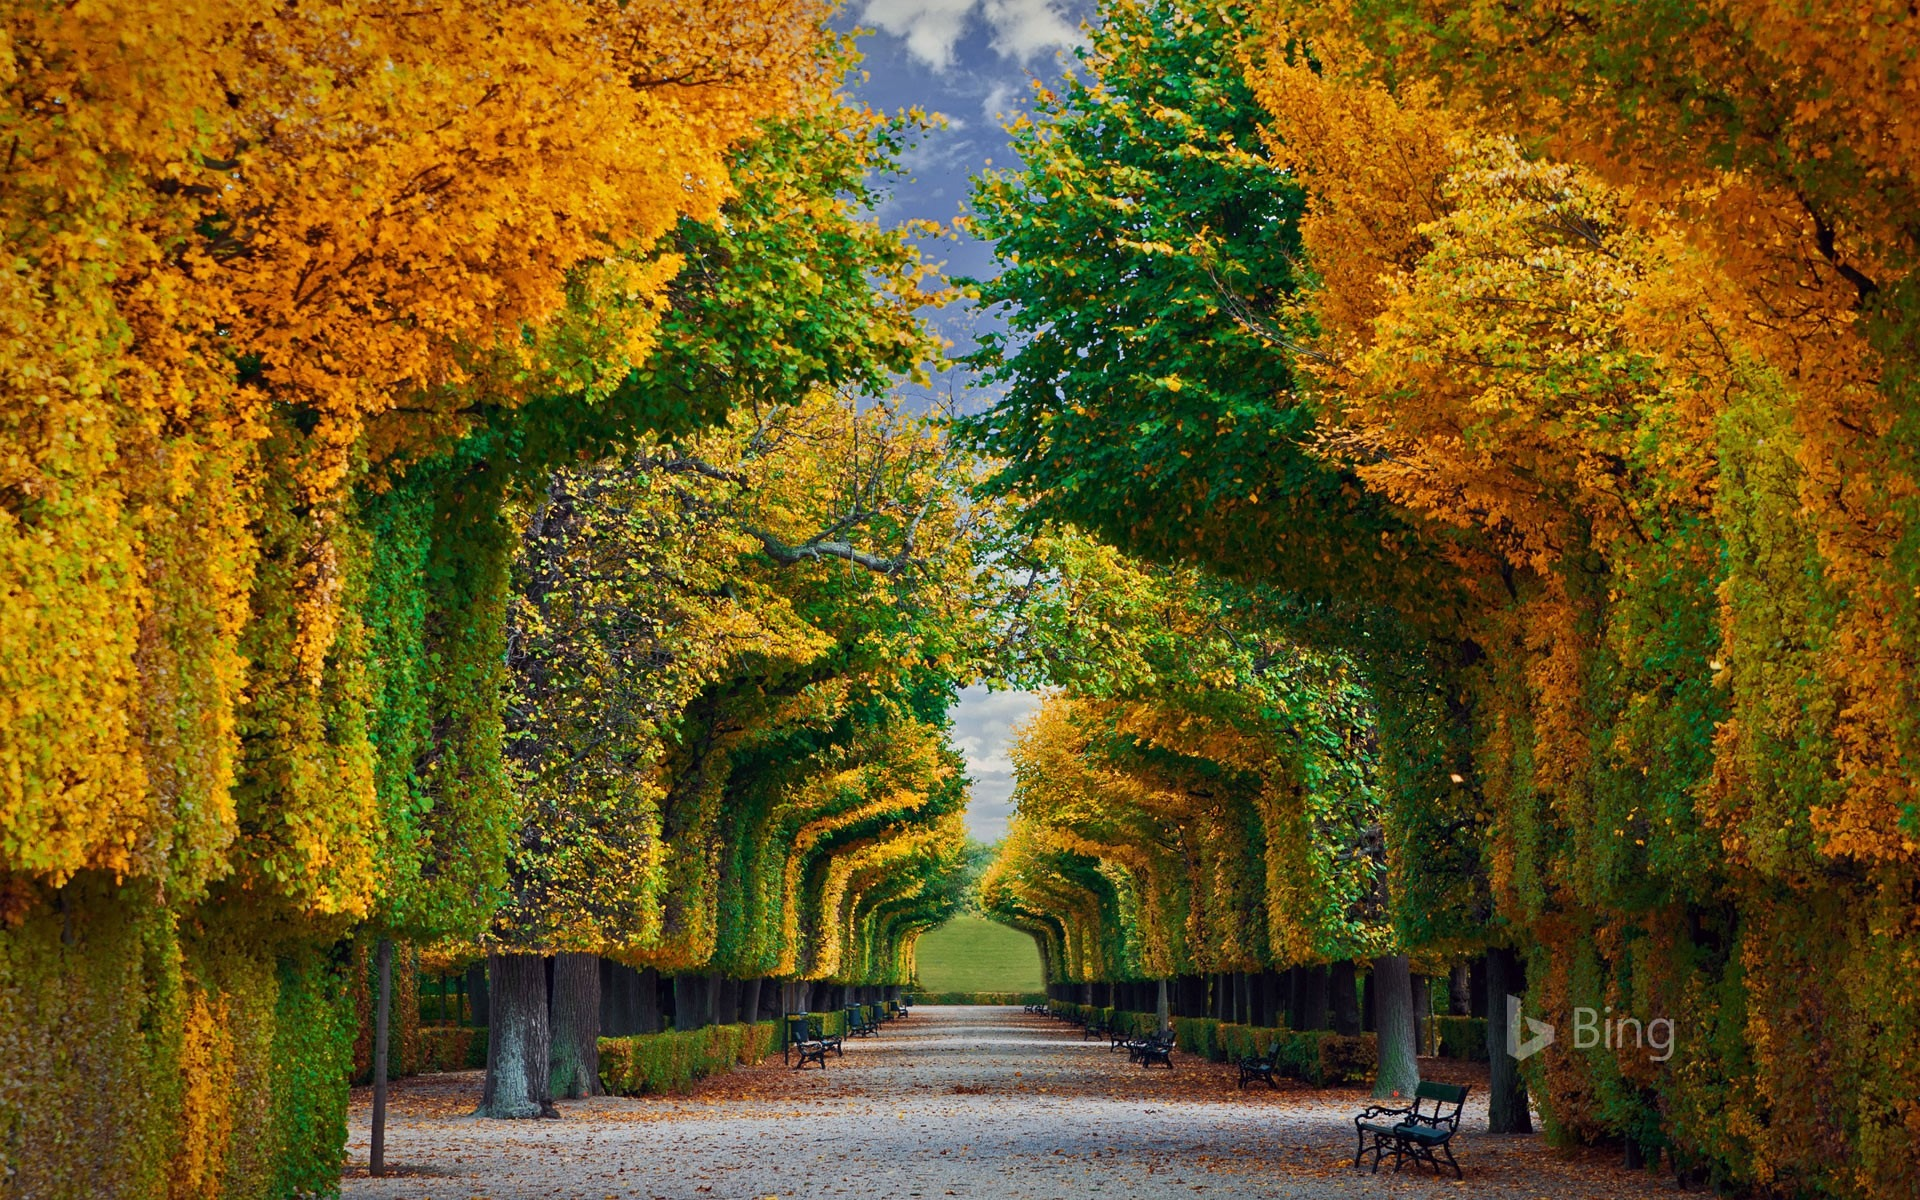 Apple Iphone X Wallpaper From Commercial Schonbrunn Palace Vienna 2016 Bing Desktop Wallpaper